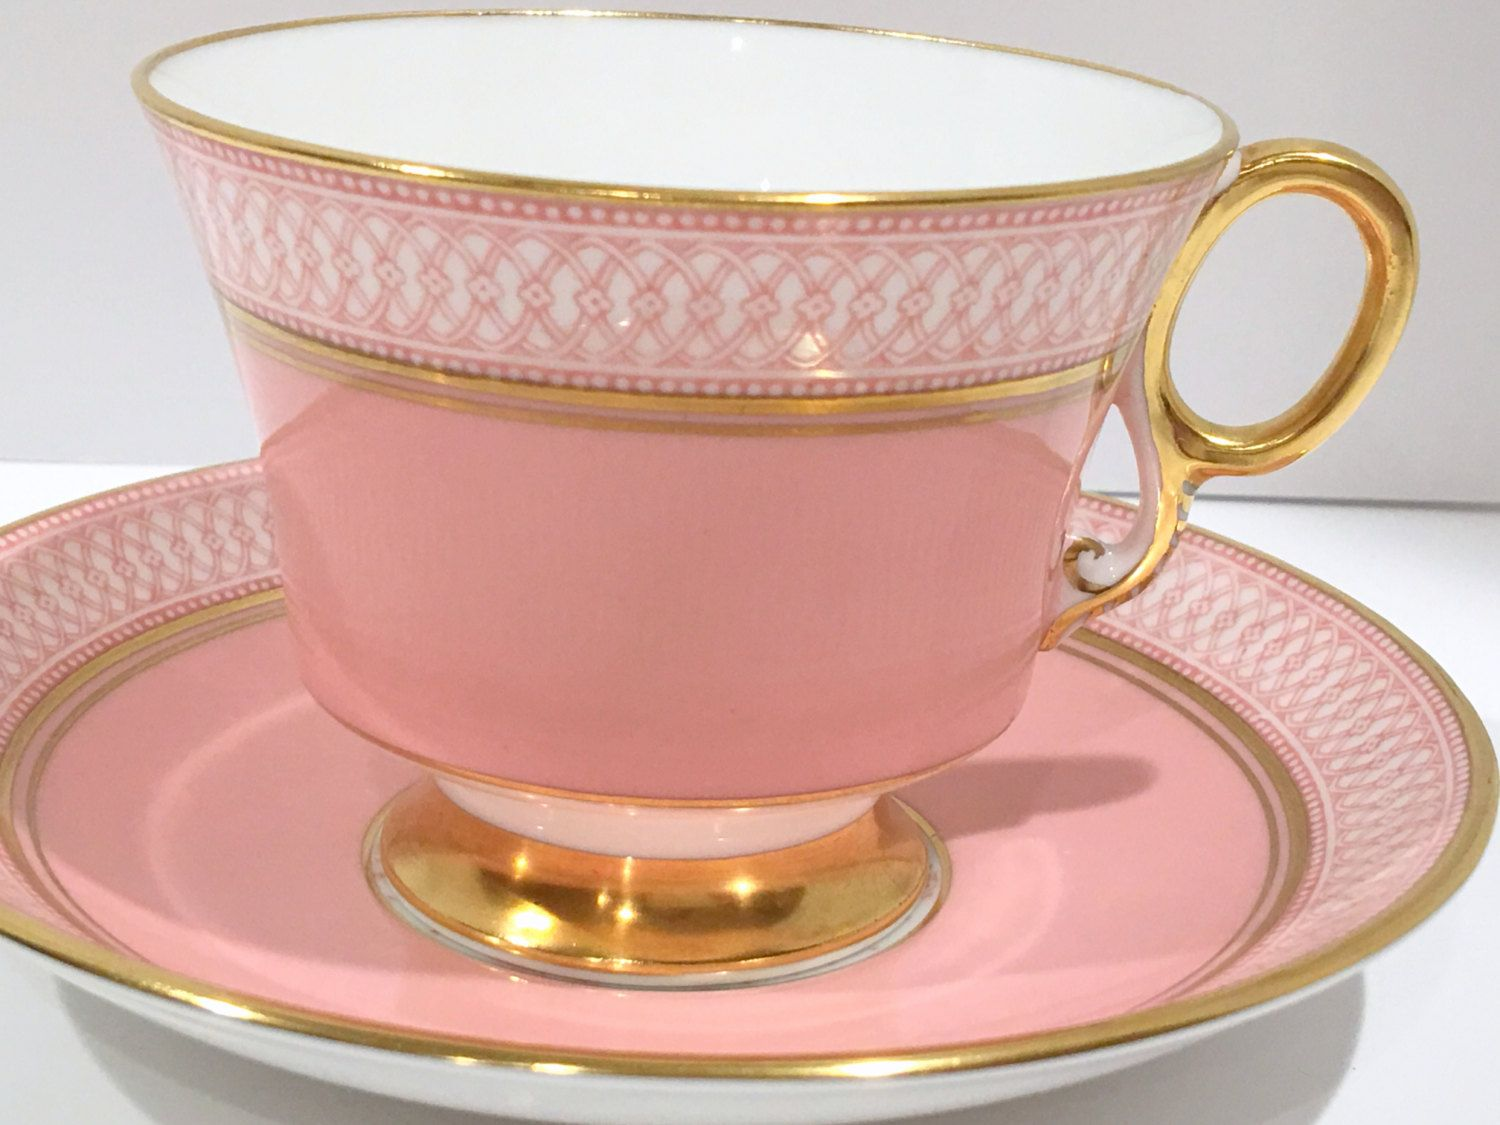 Royal Adderley Tea Cup And Saucer Pink Teacups Antique Vintage